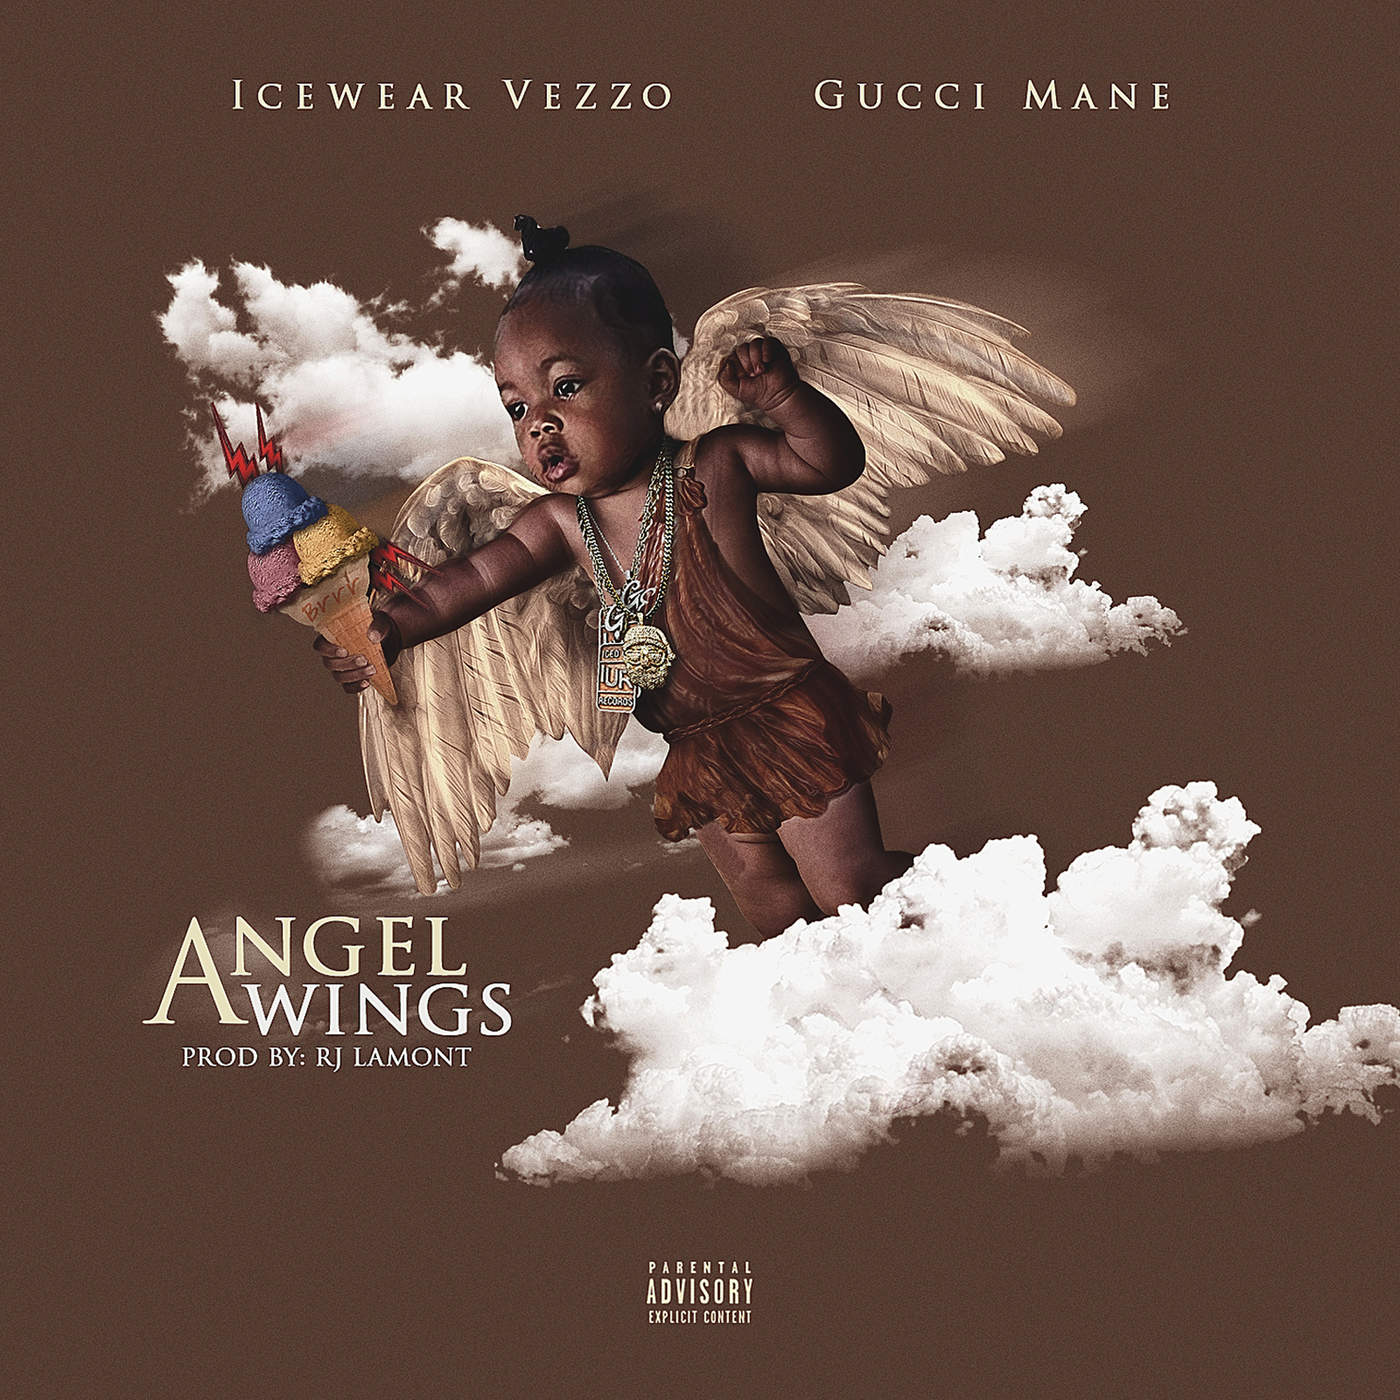 Icewear Vezzo - Angel Wings (feat. Gucci Mane) - Single Cover